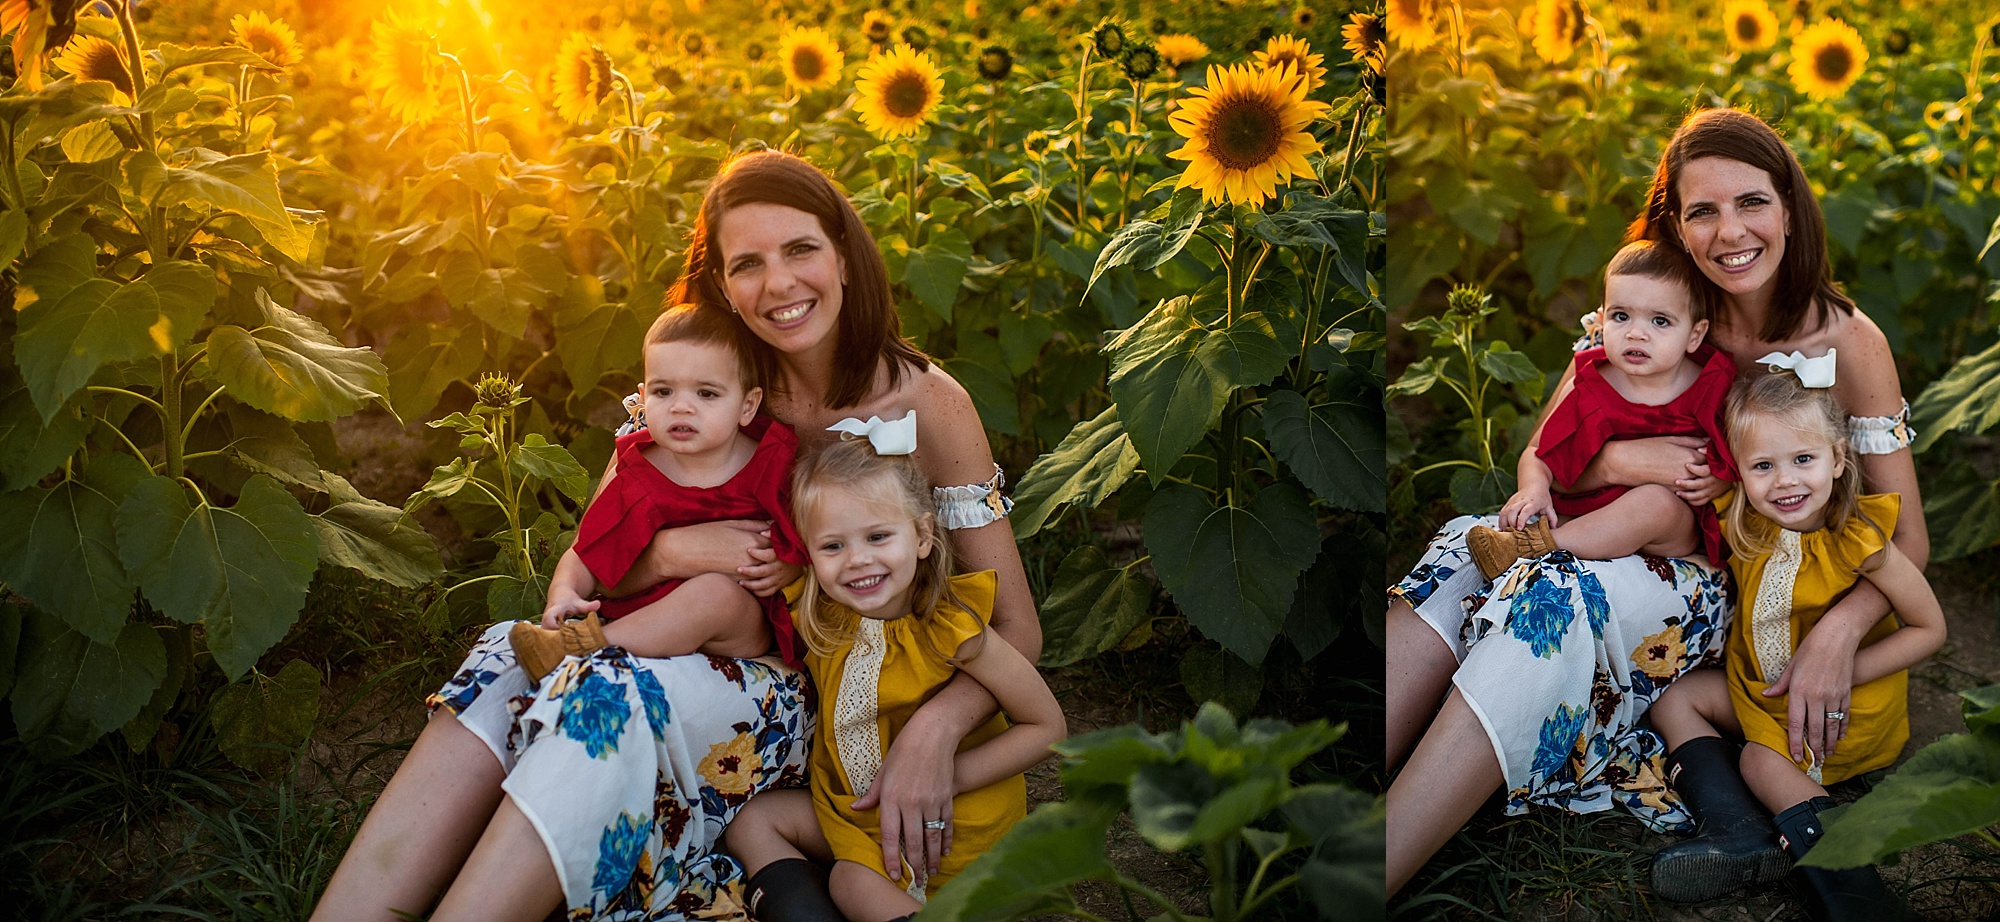 lauren-grayson-photography-cleveland-ohio-photographer-sunflower-fields-sunset-golden-hour-photo-shoot-mommy-and-me-family-child-photographer_0558.jpg